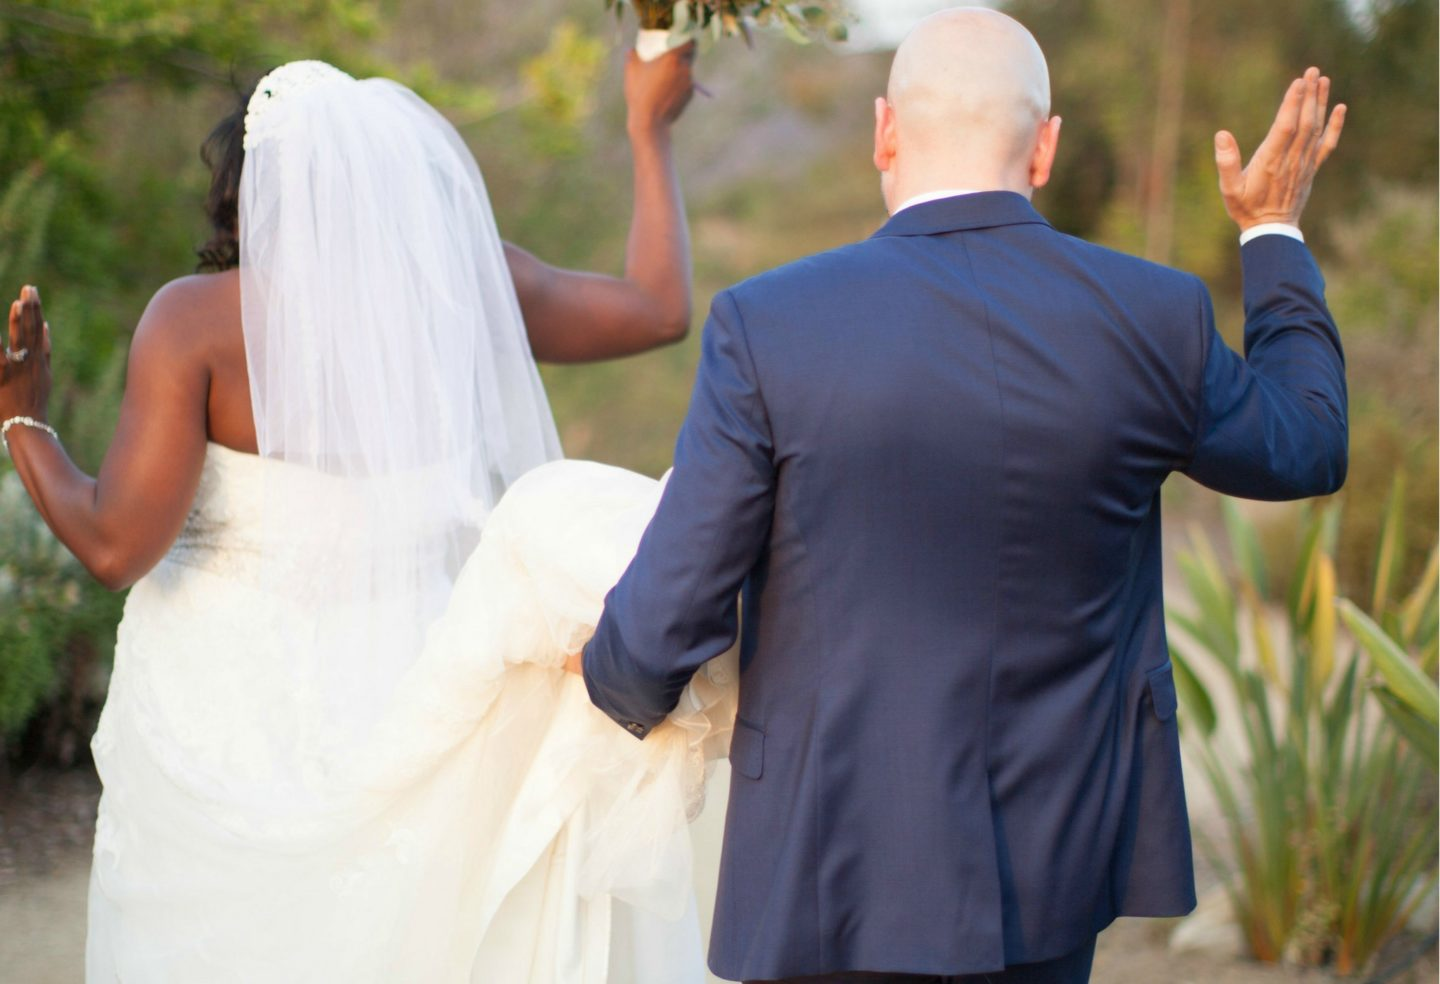 THE TRUTH ABOUT WEDDING DRESS SHOPPING WHEN PLUS-SIZED